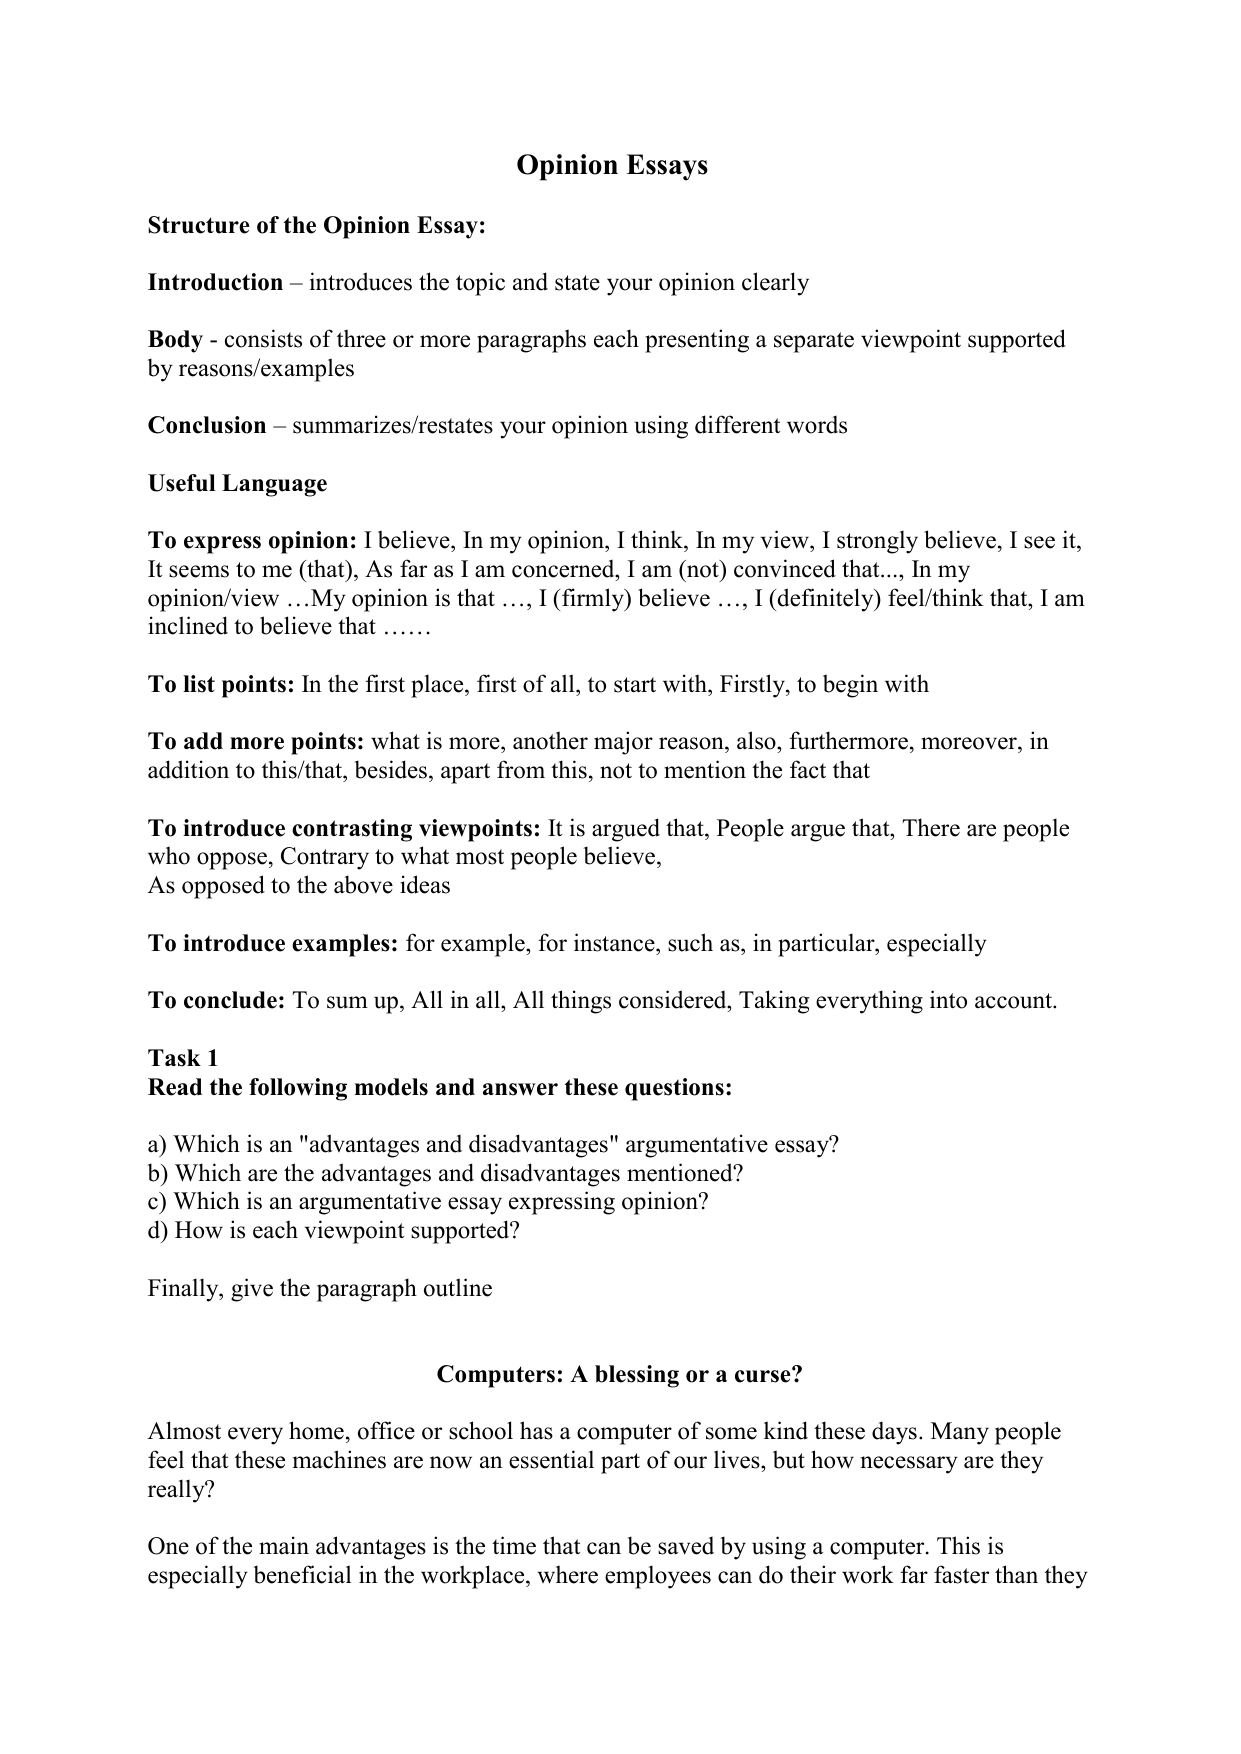 Gameshows opinion essay civil engineering technician cover letter